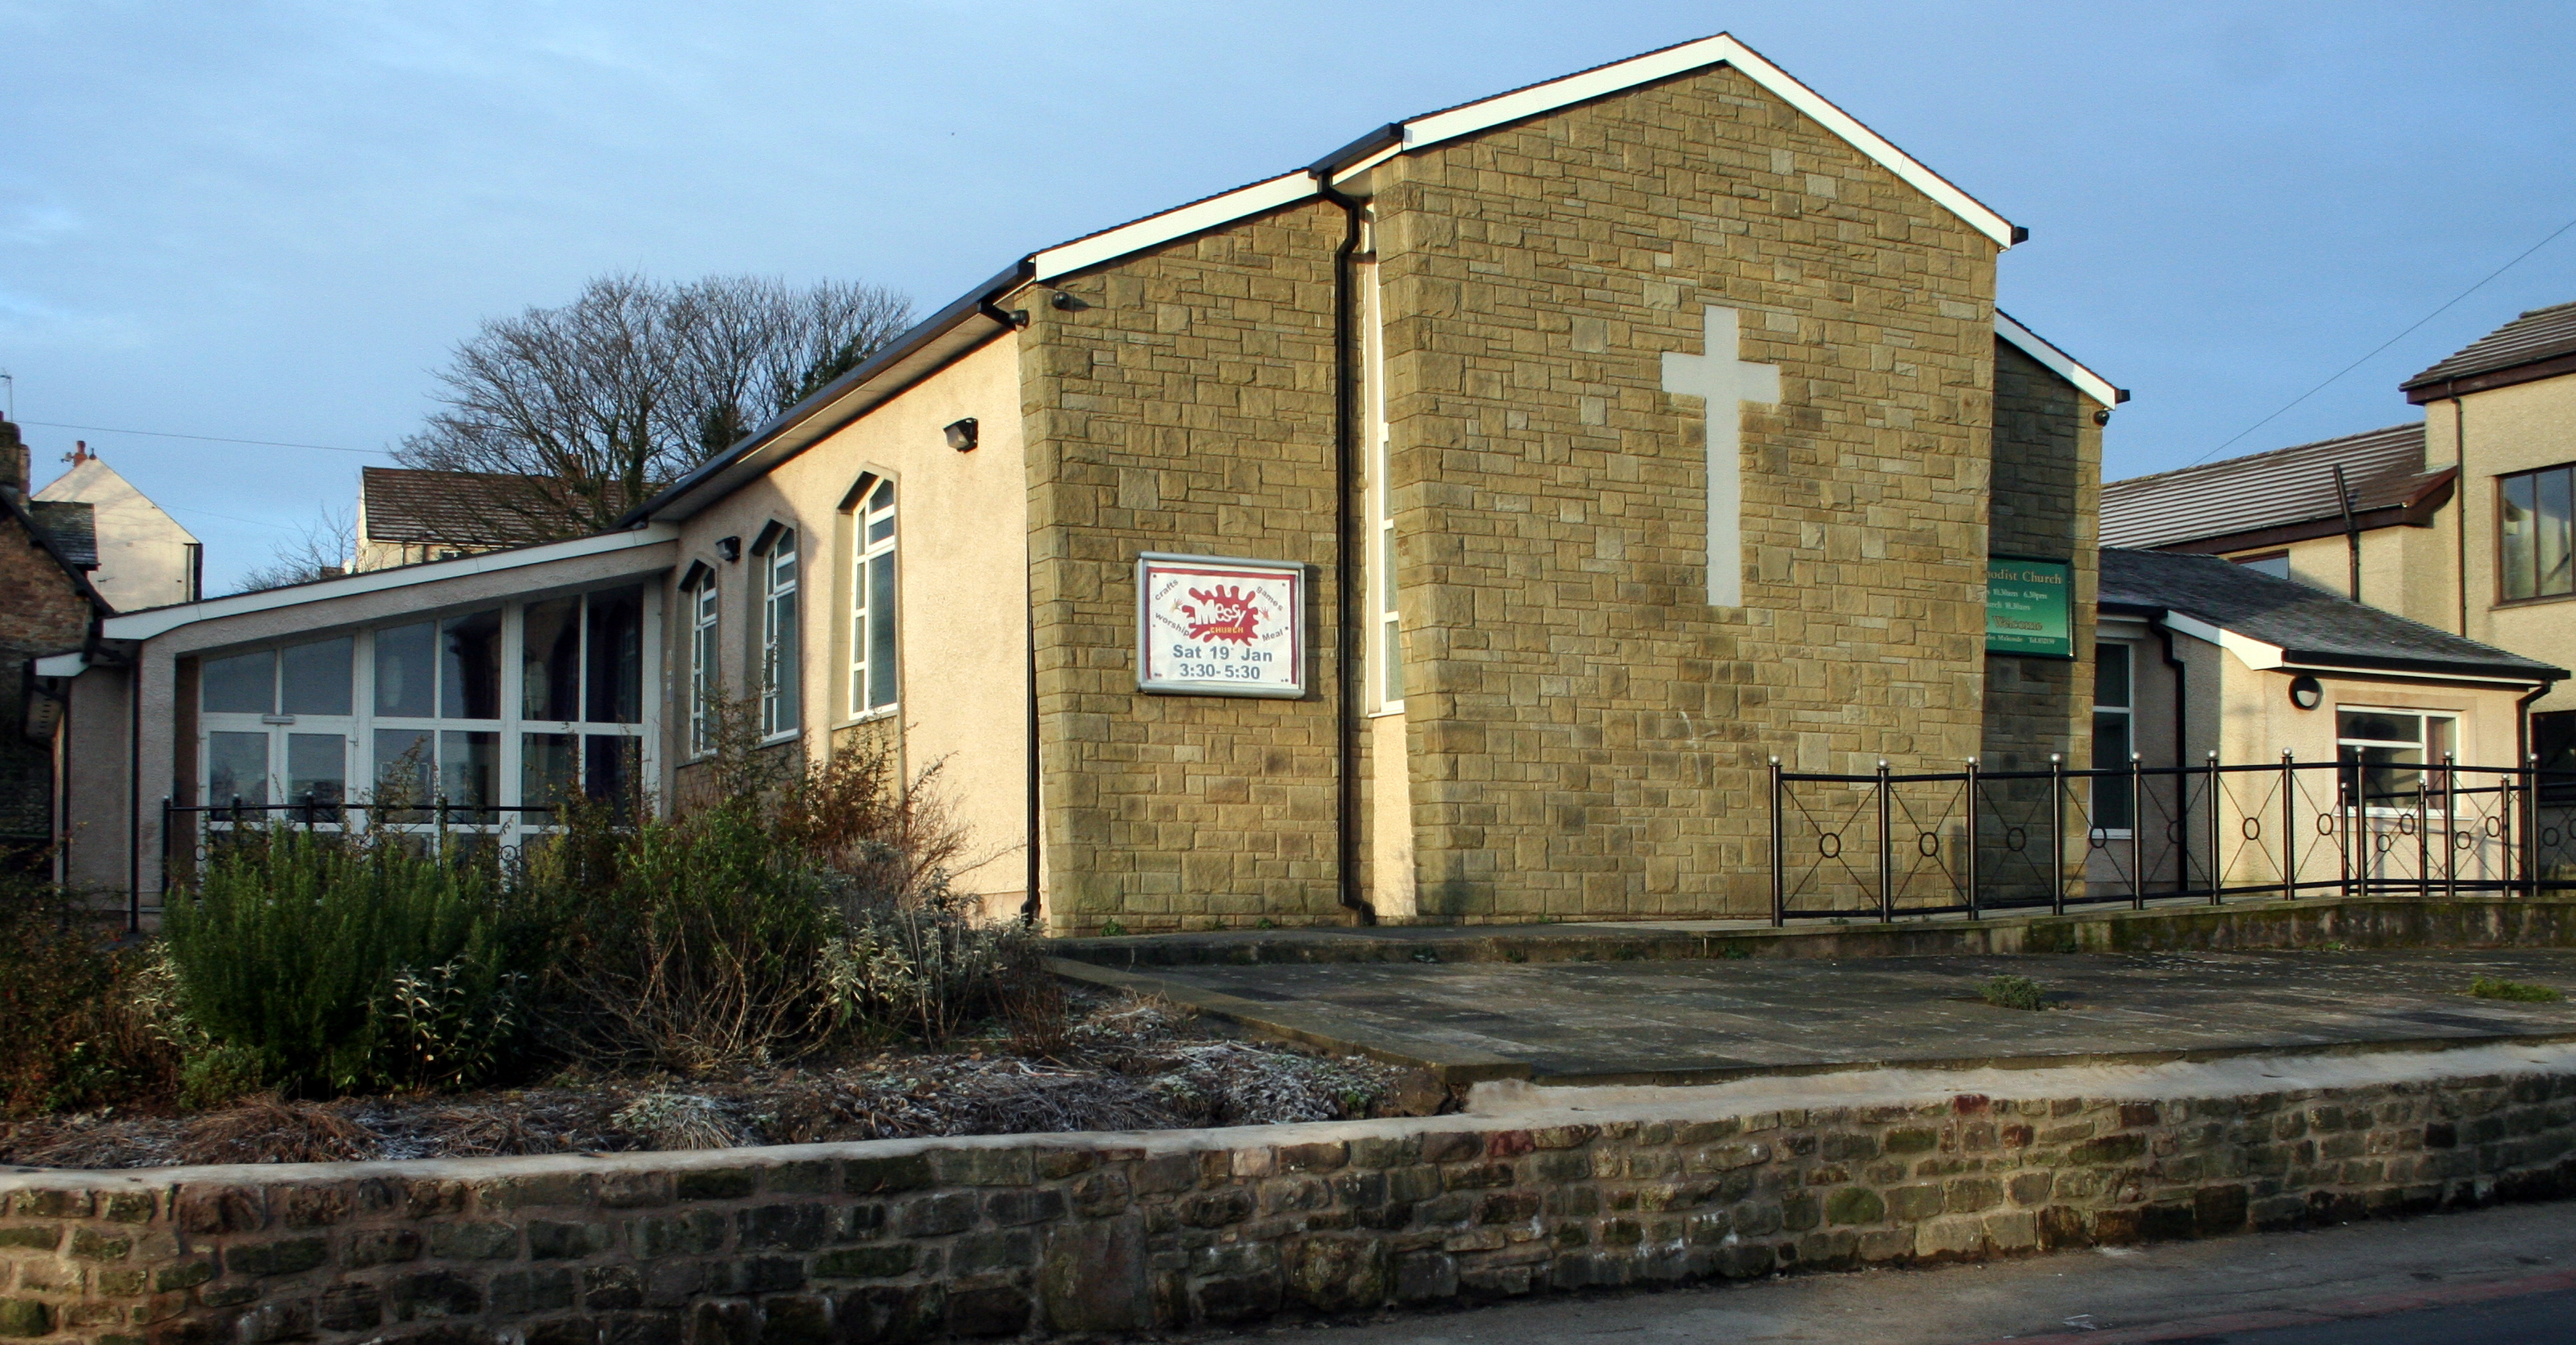 Wesley Methodist Church and Community Centre Heysham